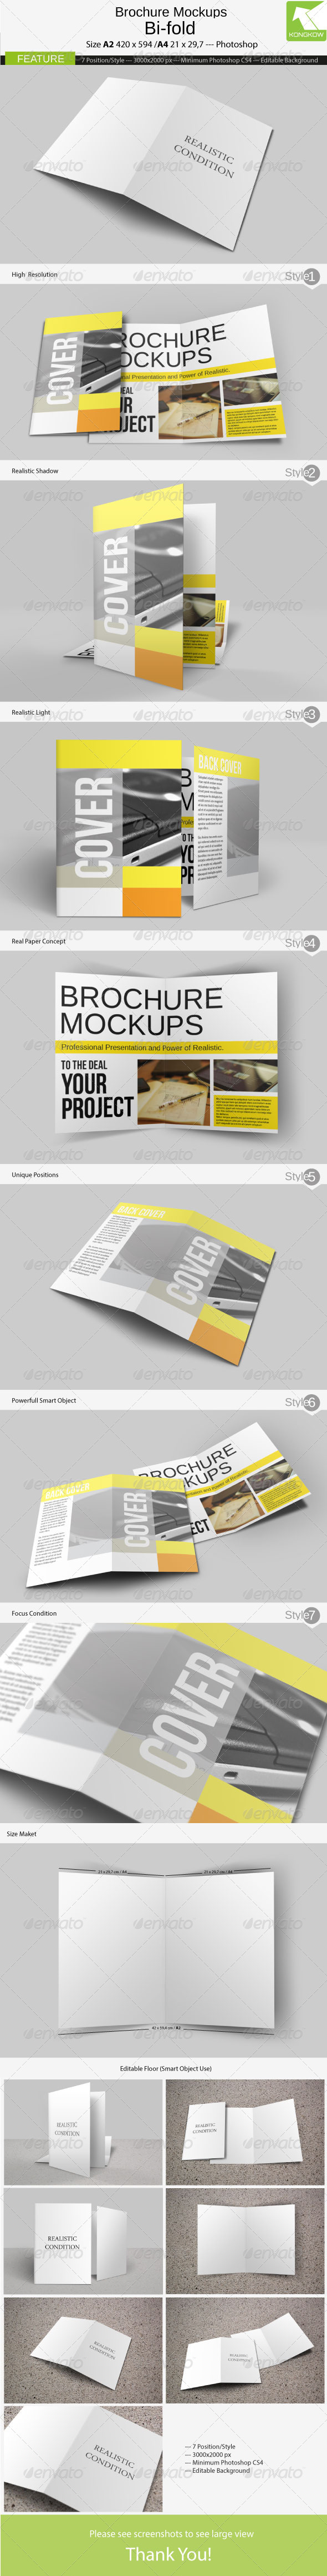 Brochure Mockups 4 Pages